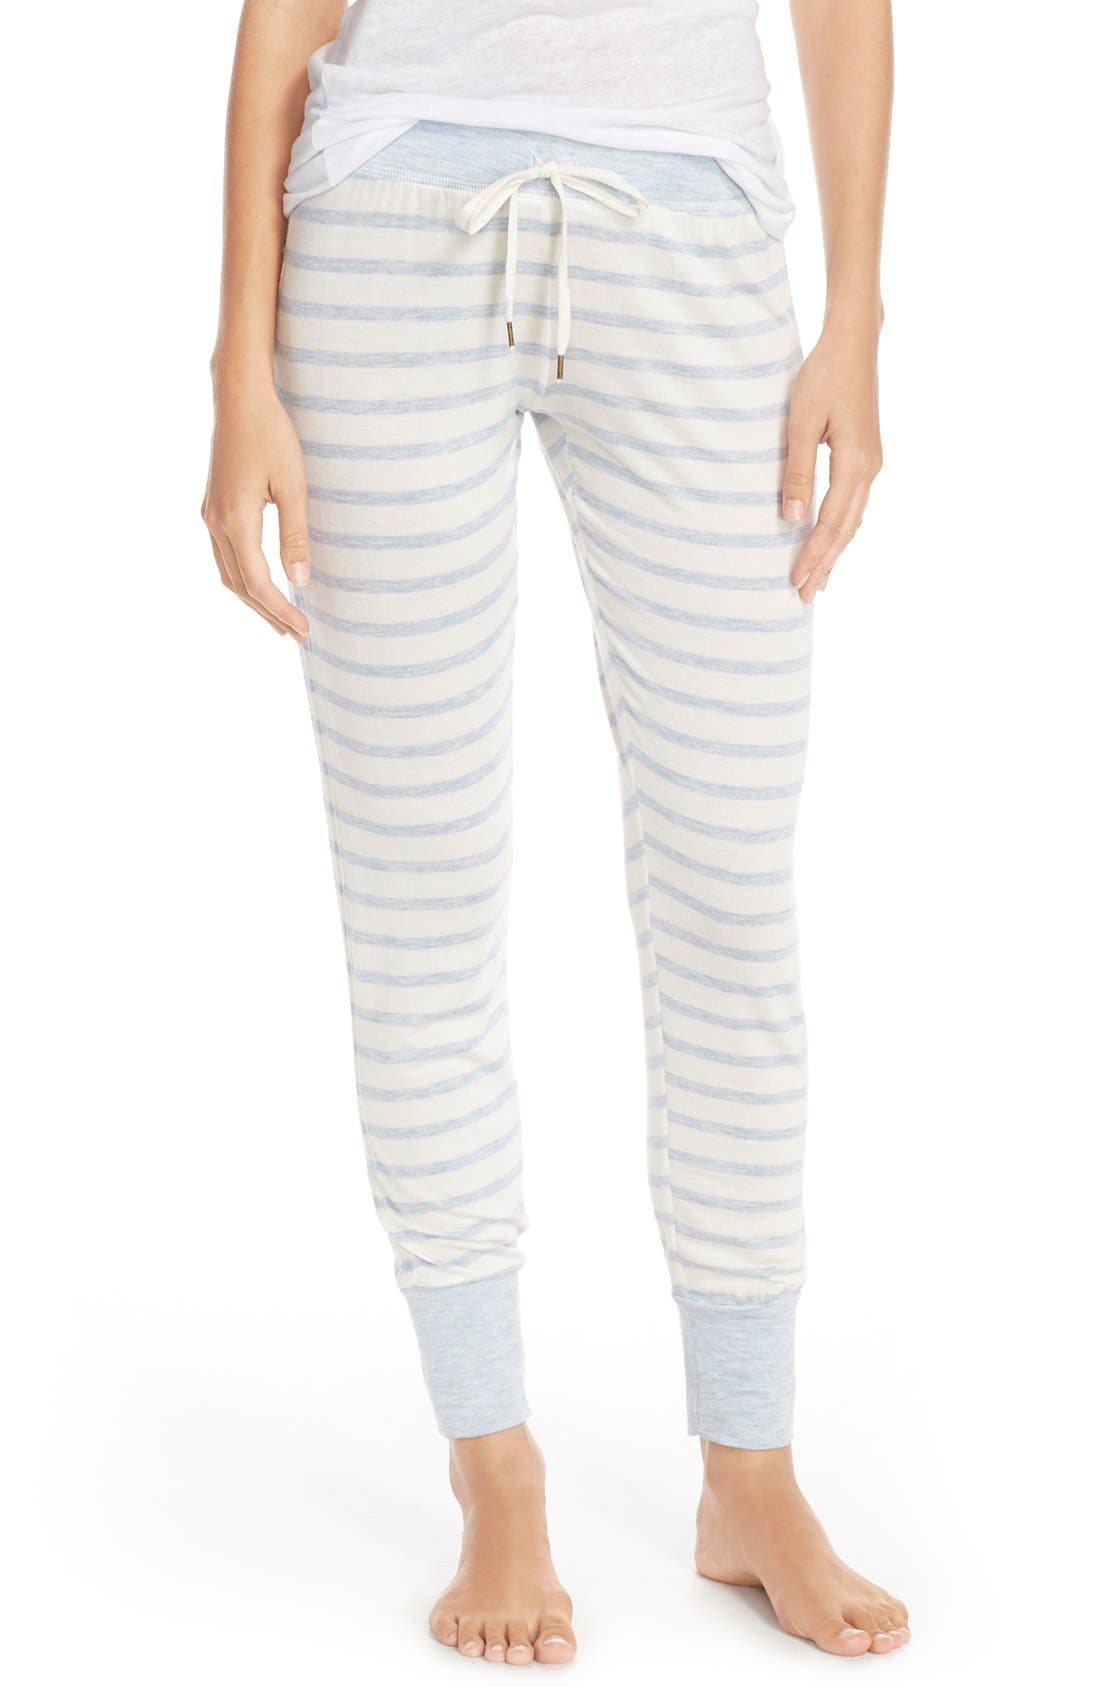 Alternate Image 1 Selected - Splendid Cuff French Terry Lounge Pants